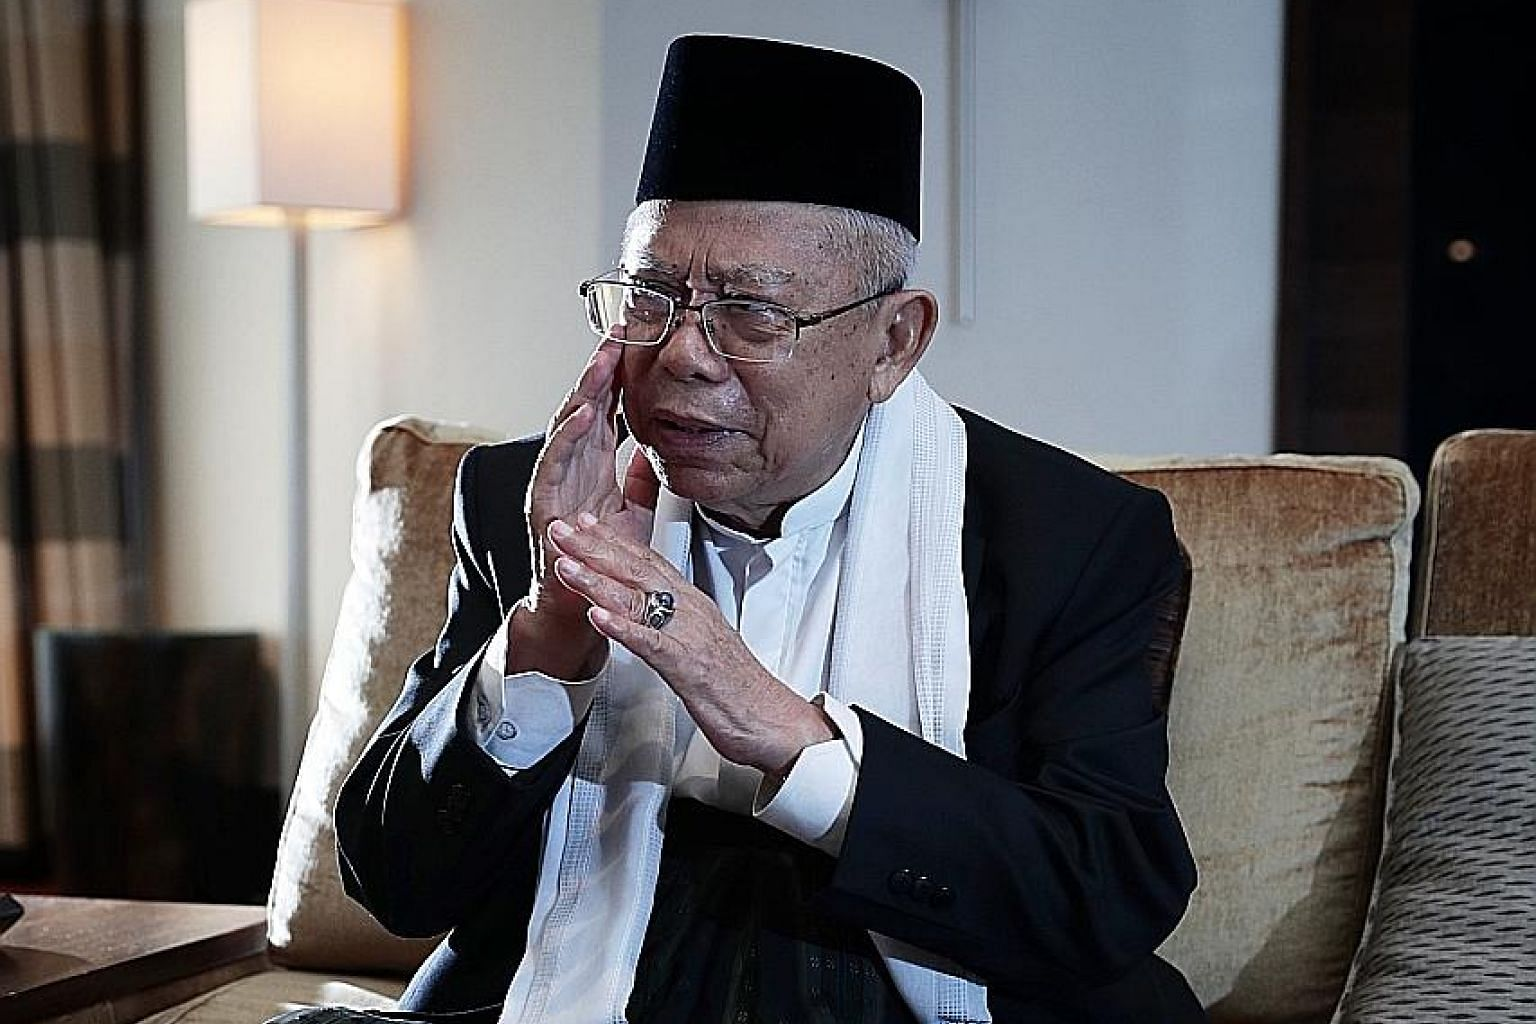 Dr Ma'ruf Amin (above) has vowed to help President Joko Widodo reduce Indonesia's poverty gap and income disparity as well as continue with infrastructure projects such as the development of airports and ports.